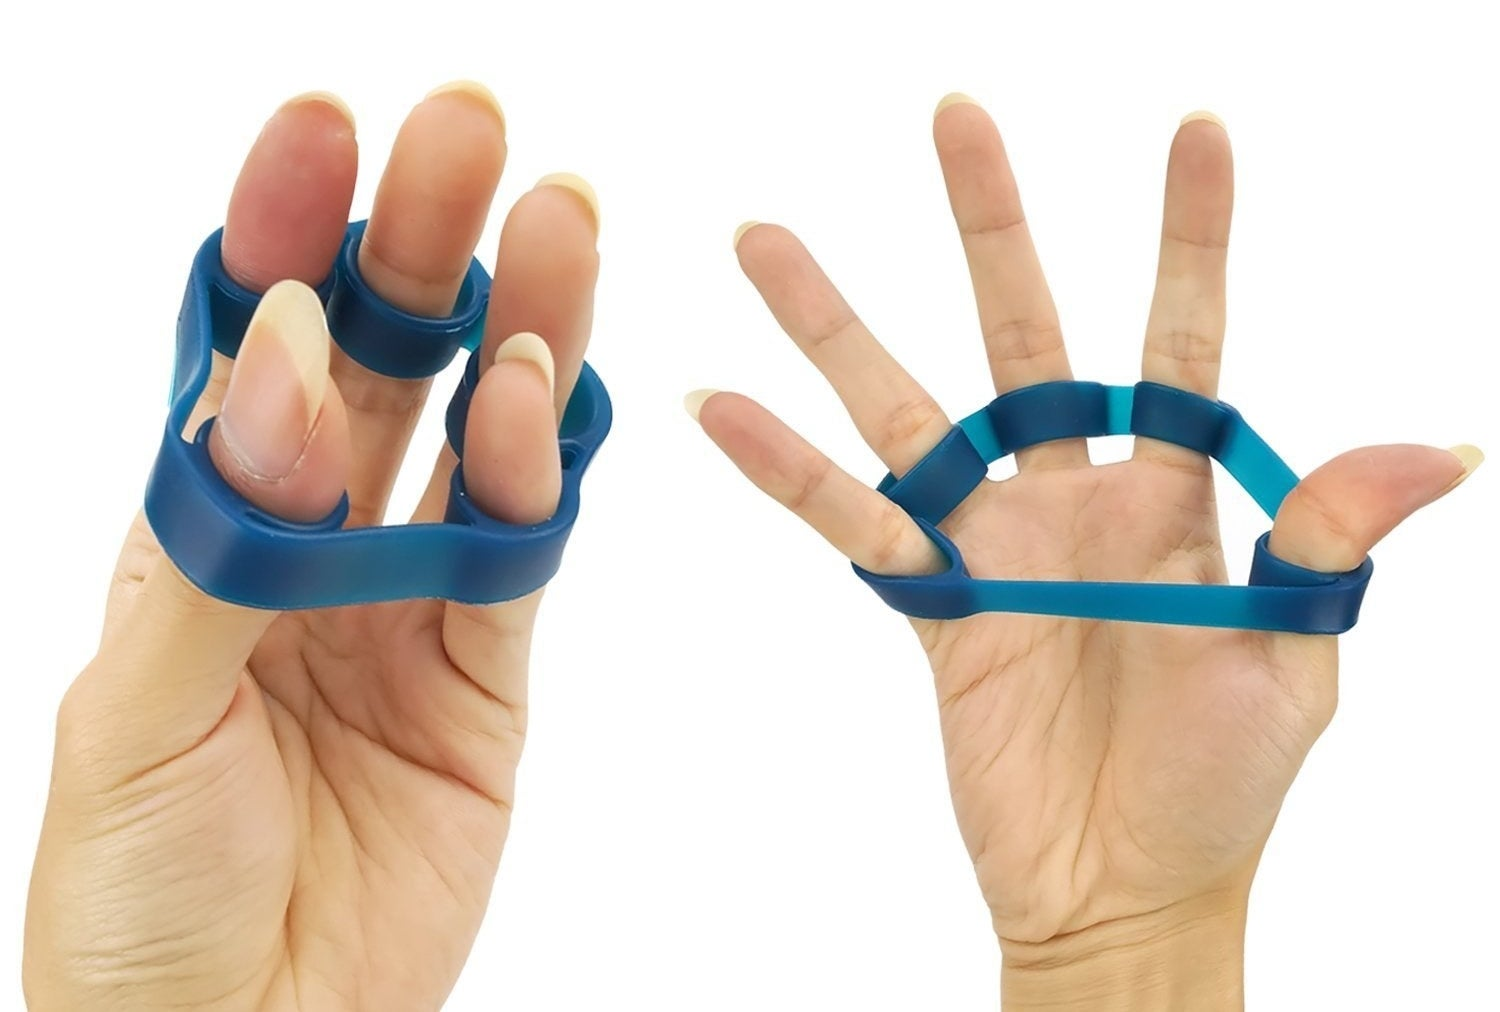 A hand stretching its fingers using the resistance band.